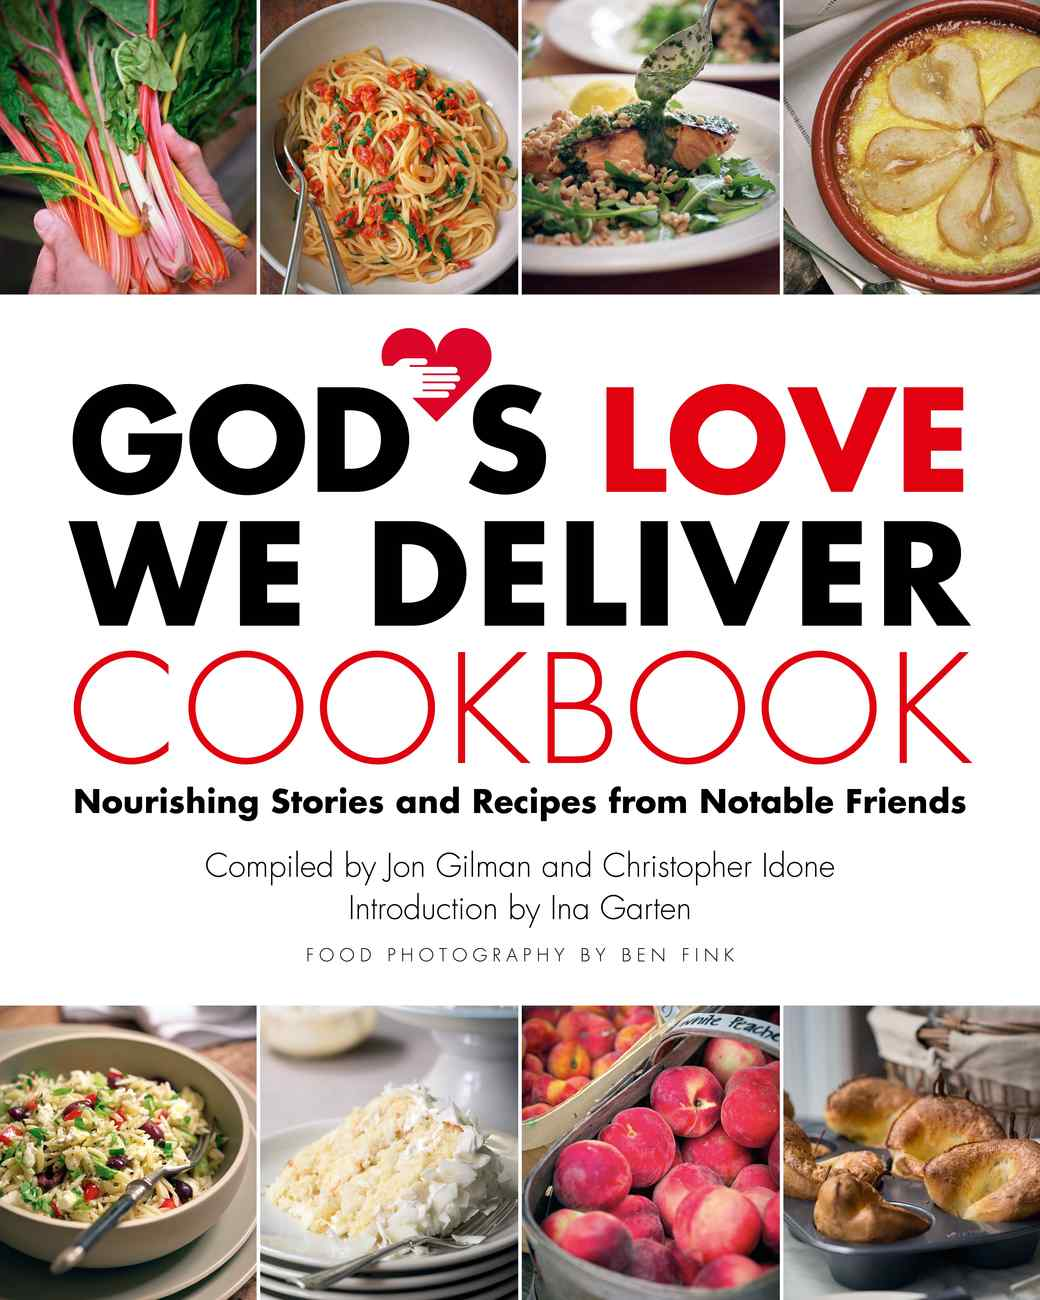 Cover of the God's Love We Deliver Cookbook